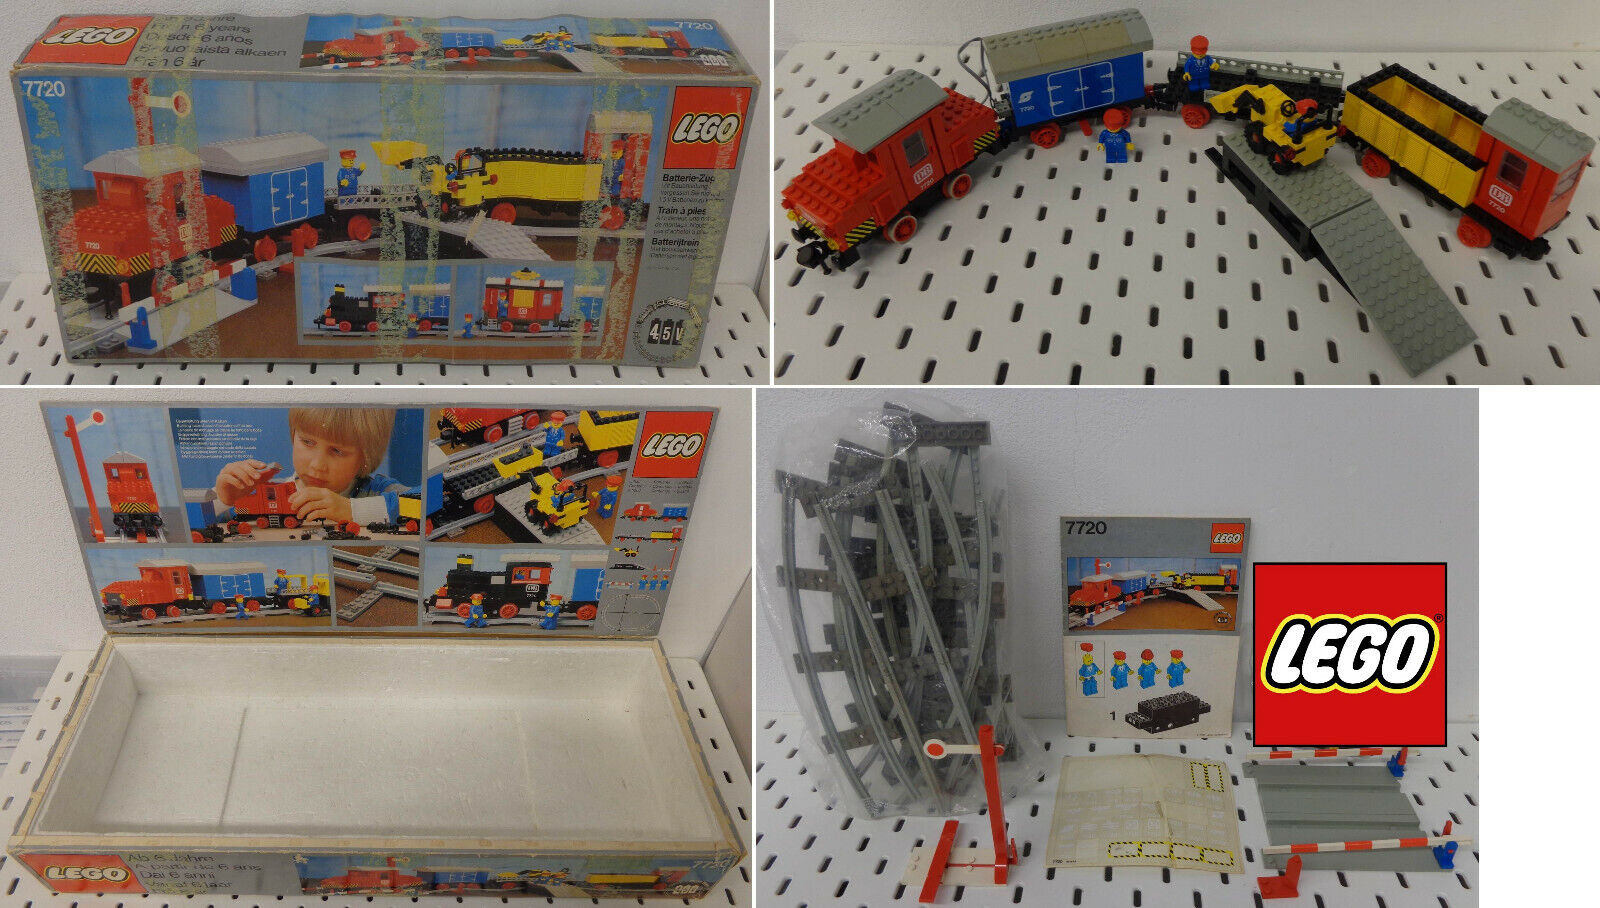 Lego Game Gioco LEGO Trains Treno 4.5 V 1980 Set 7720 - Diesel Freight Train -